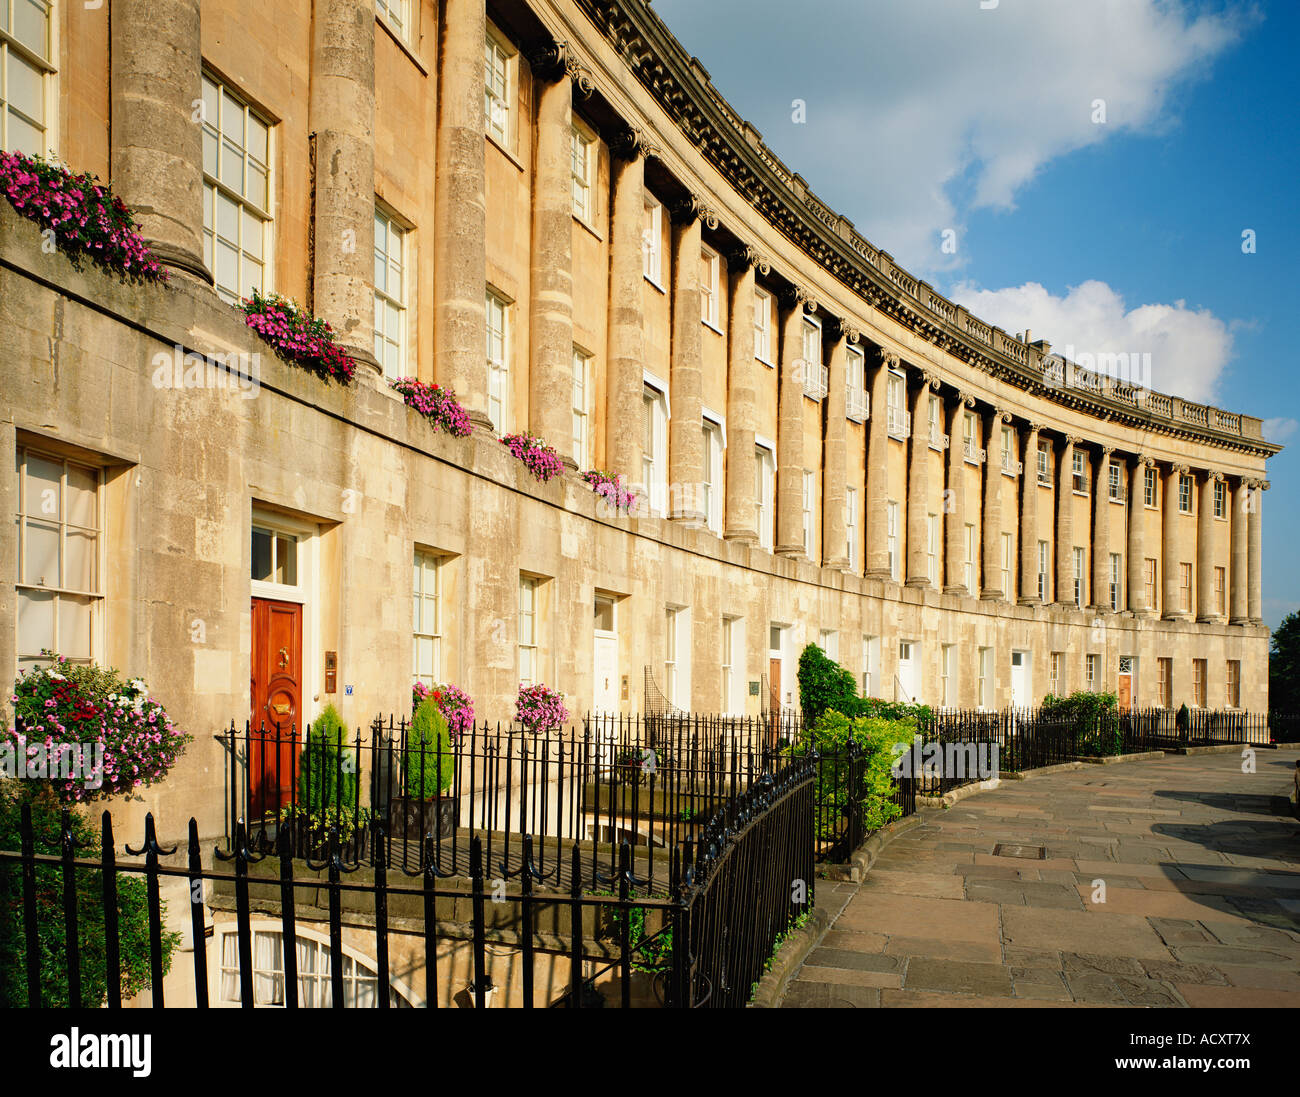 GB SOMERSET BATH ROYAL CRESCENT - Stock Image